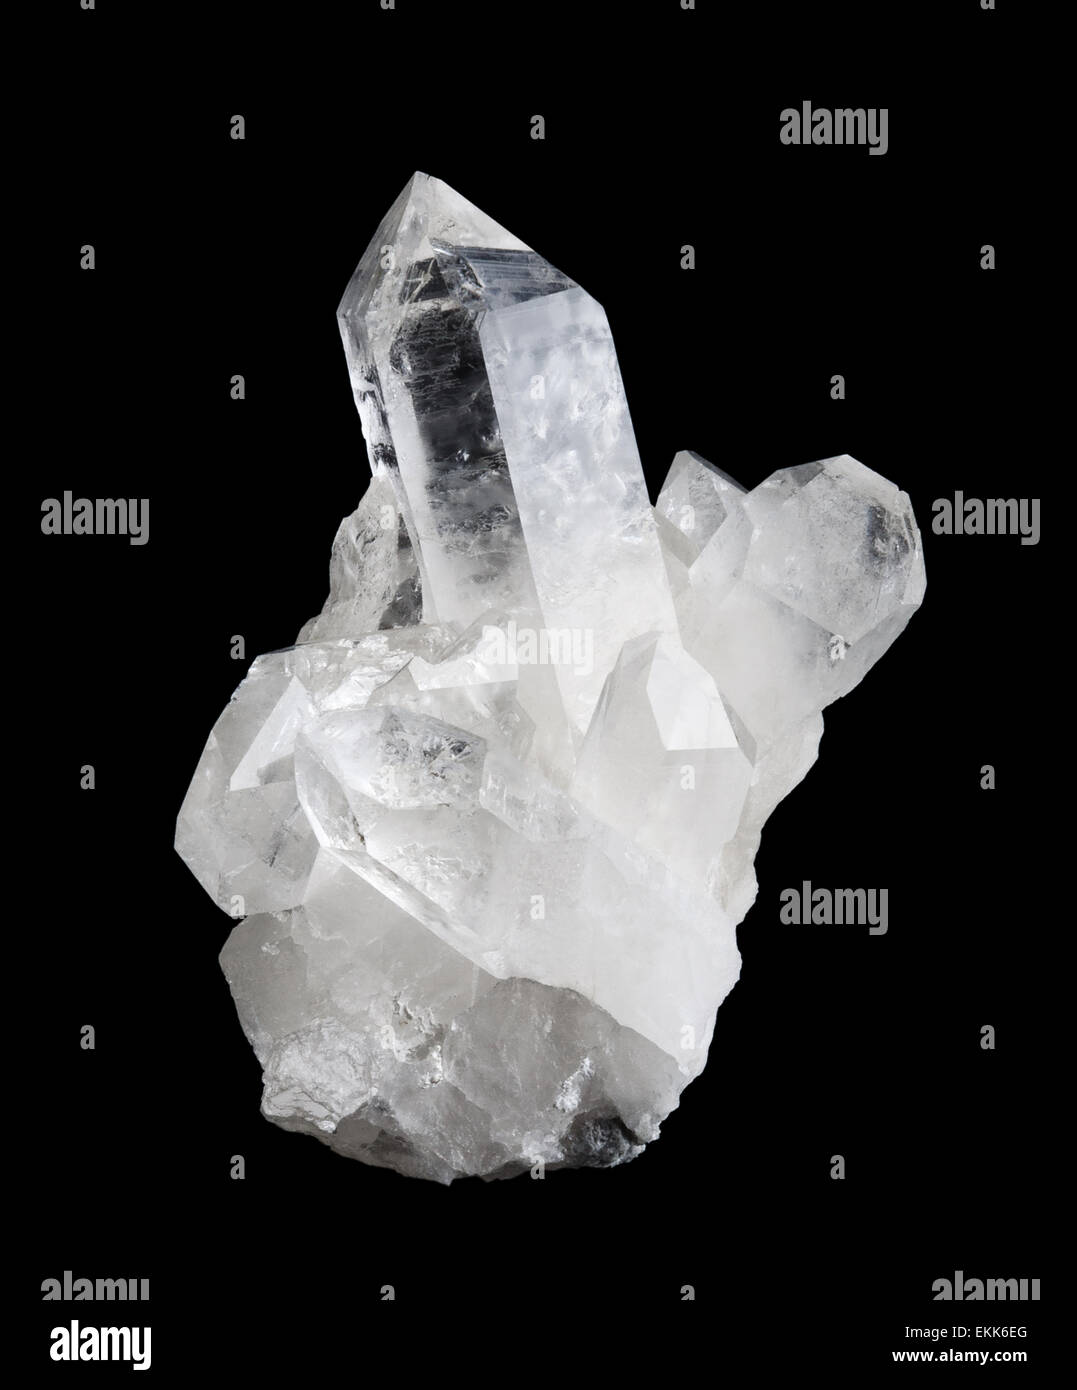 Quartz crystal cluster high size on black background, mineral also used as semi-precious gemstone. Silica, silicon - Stock Image